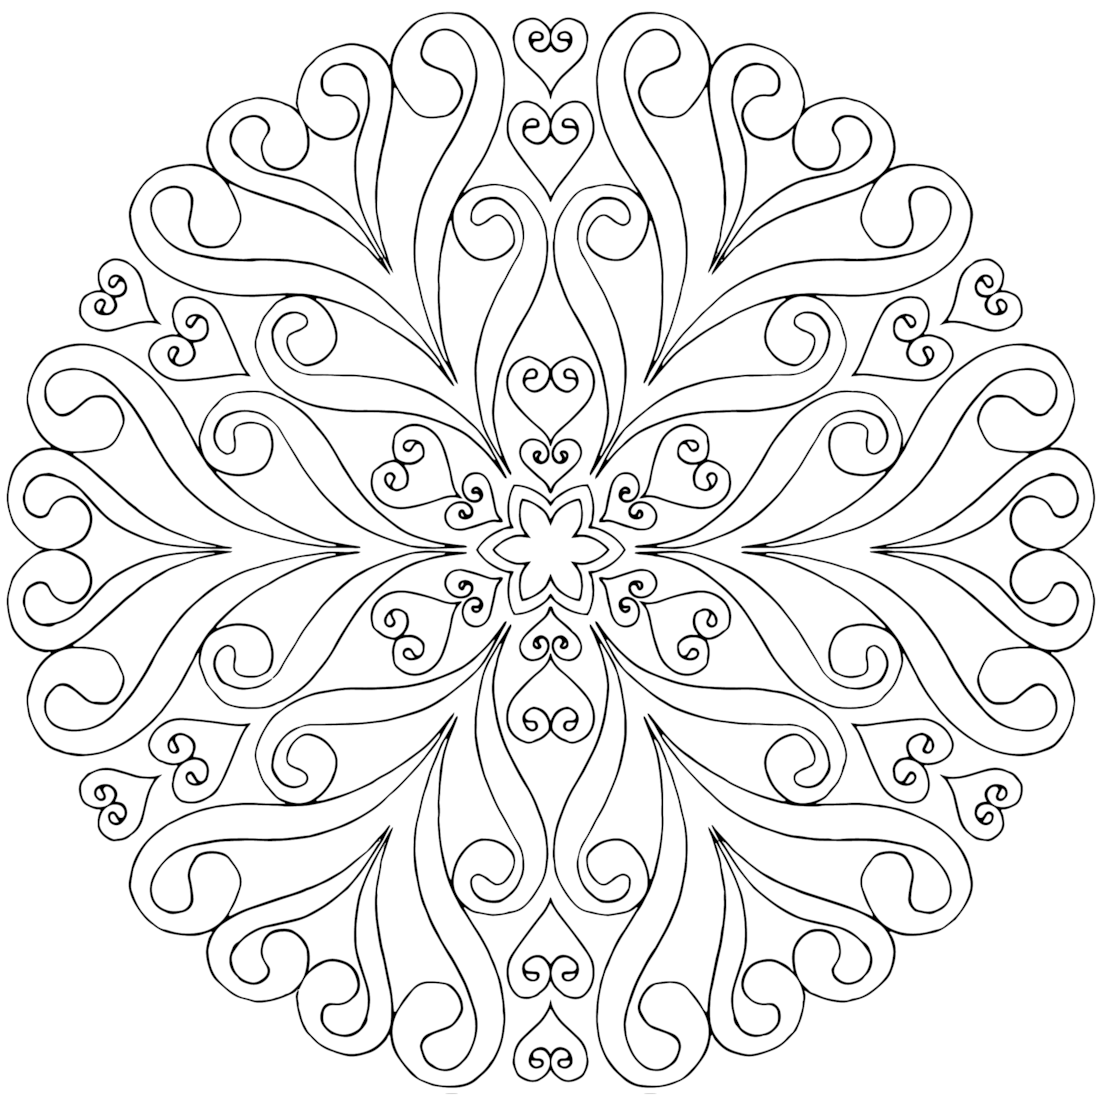 Pin by Lizet Barokas Koldan on Mandala | Coloring pages, Mandala ...